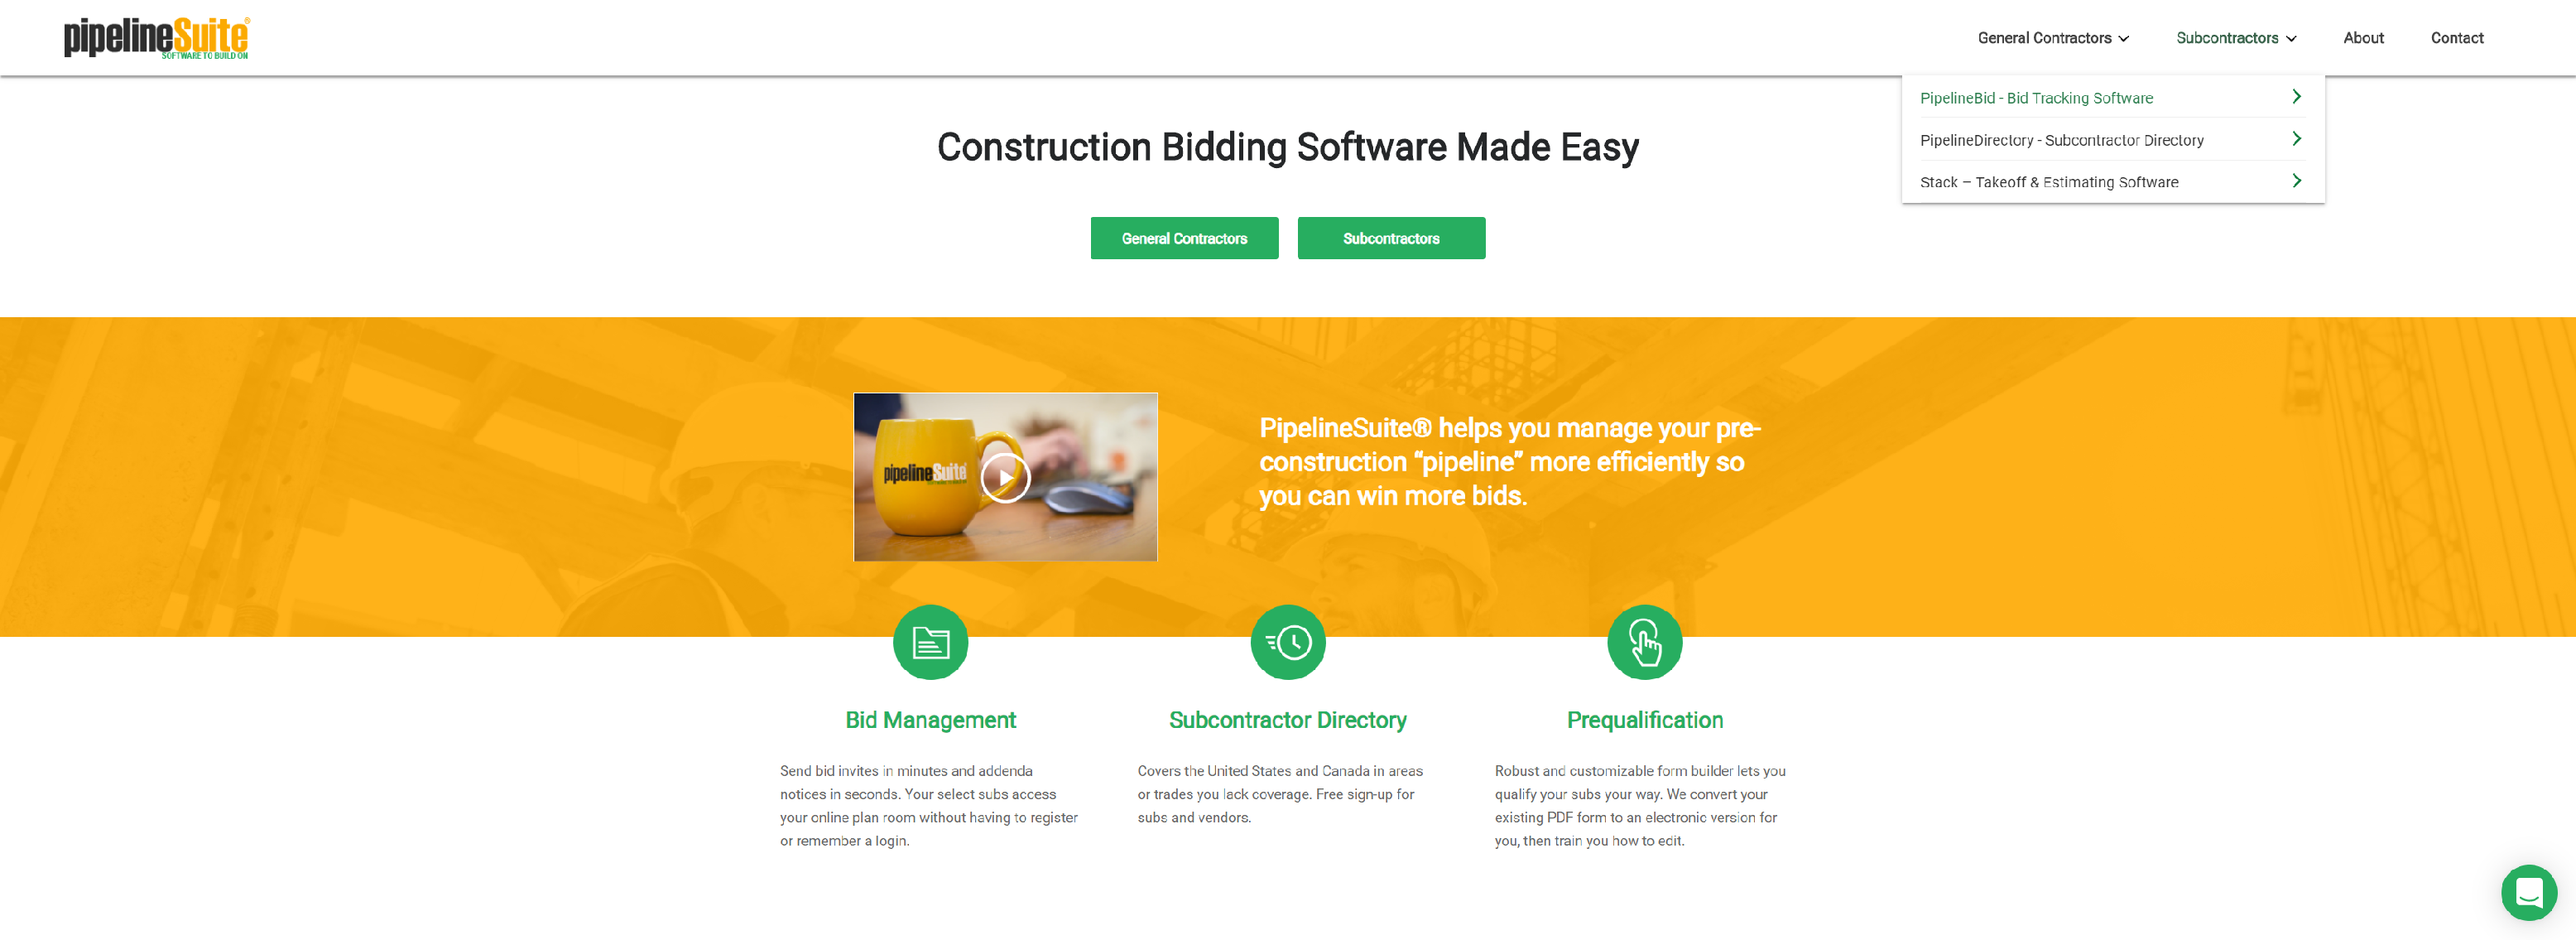 Top 8 Best Construction Bid Management Software - 2019 | Cllax - Top